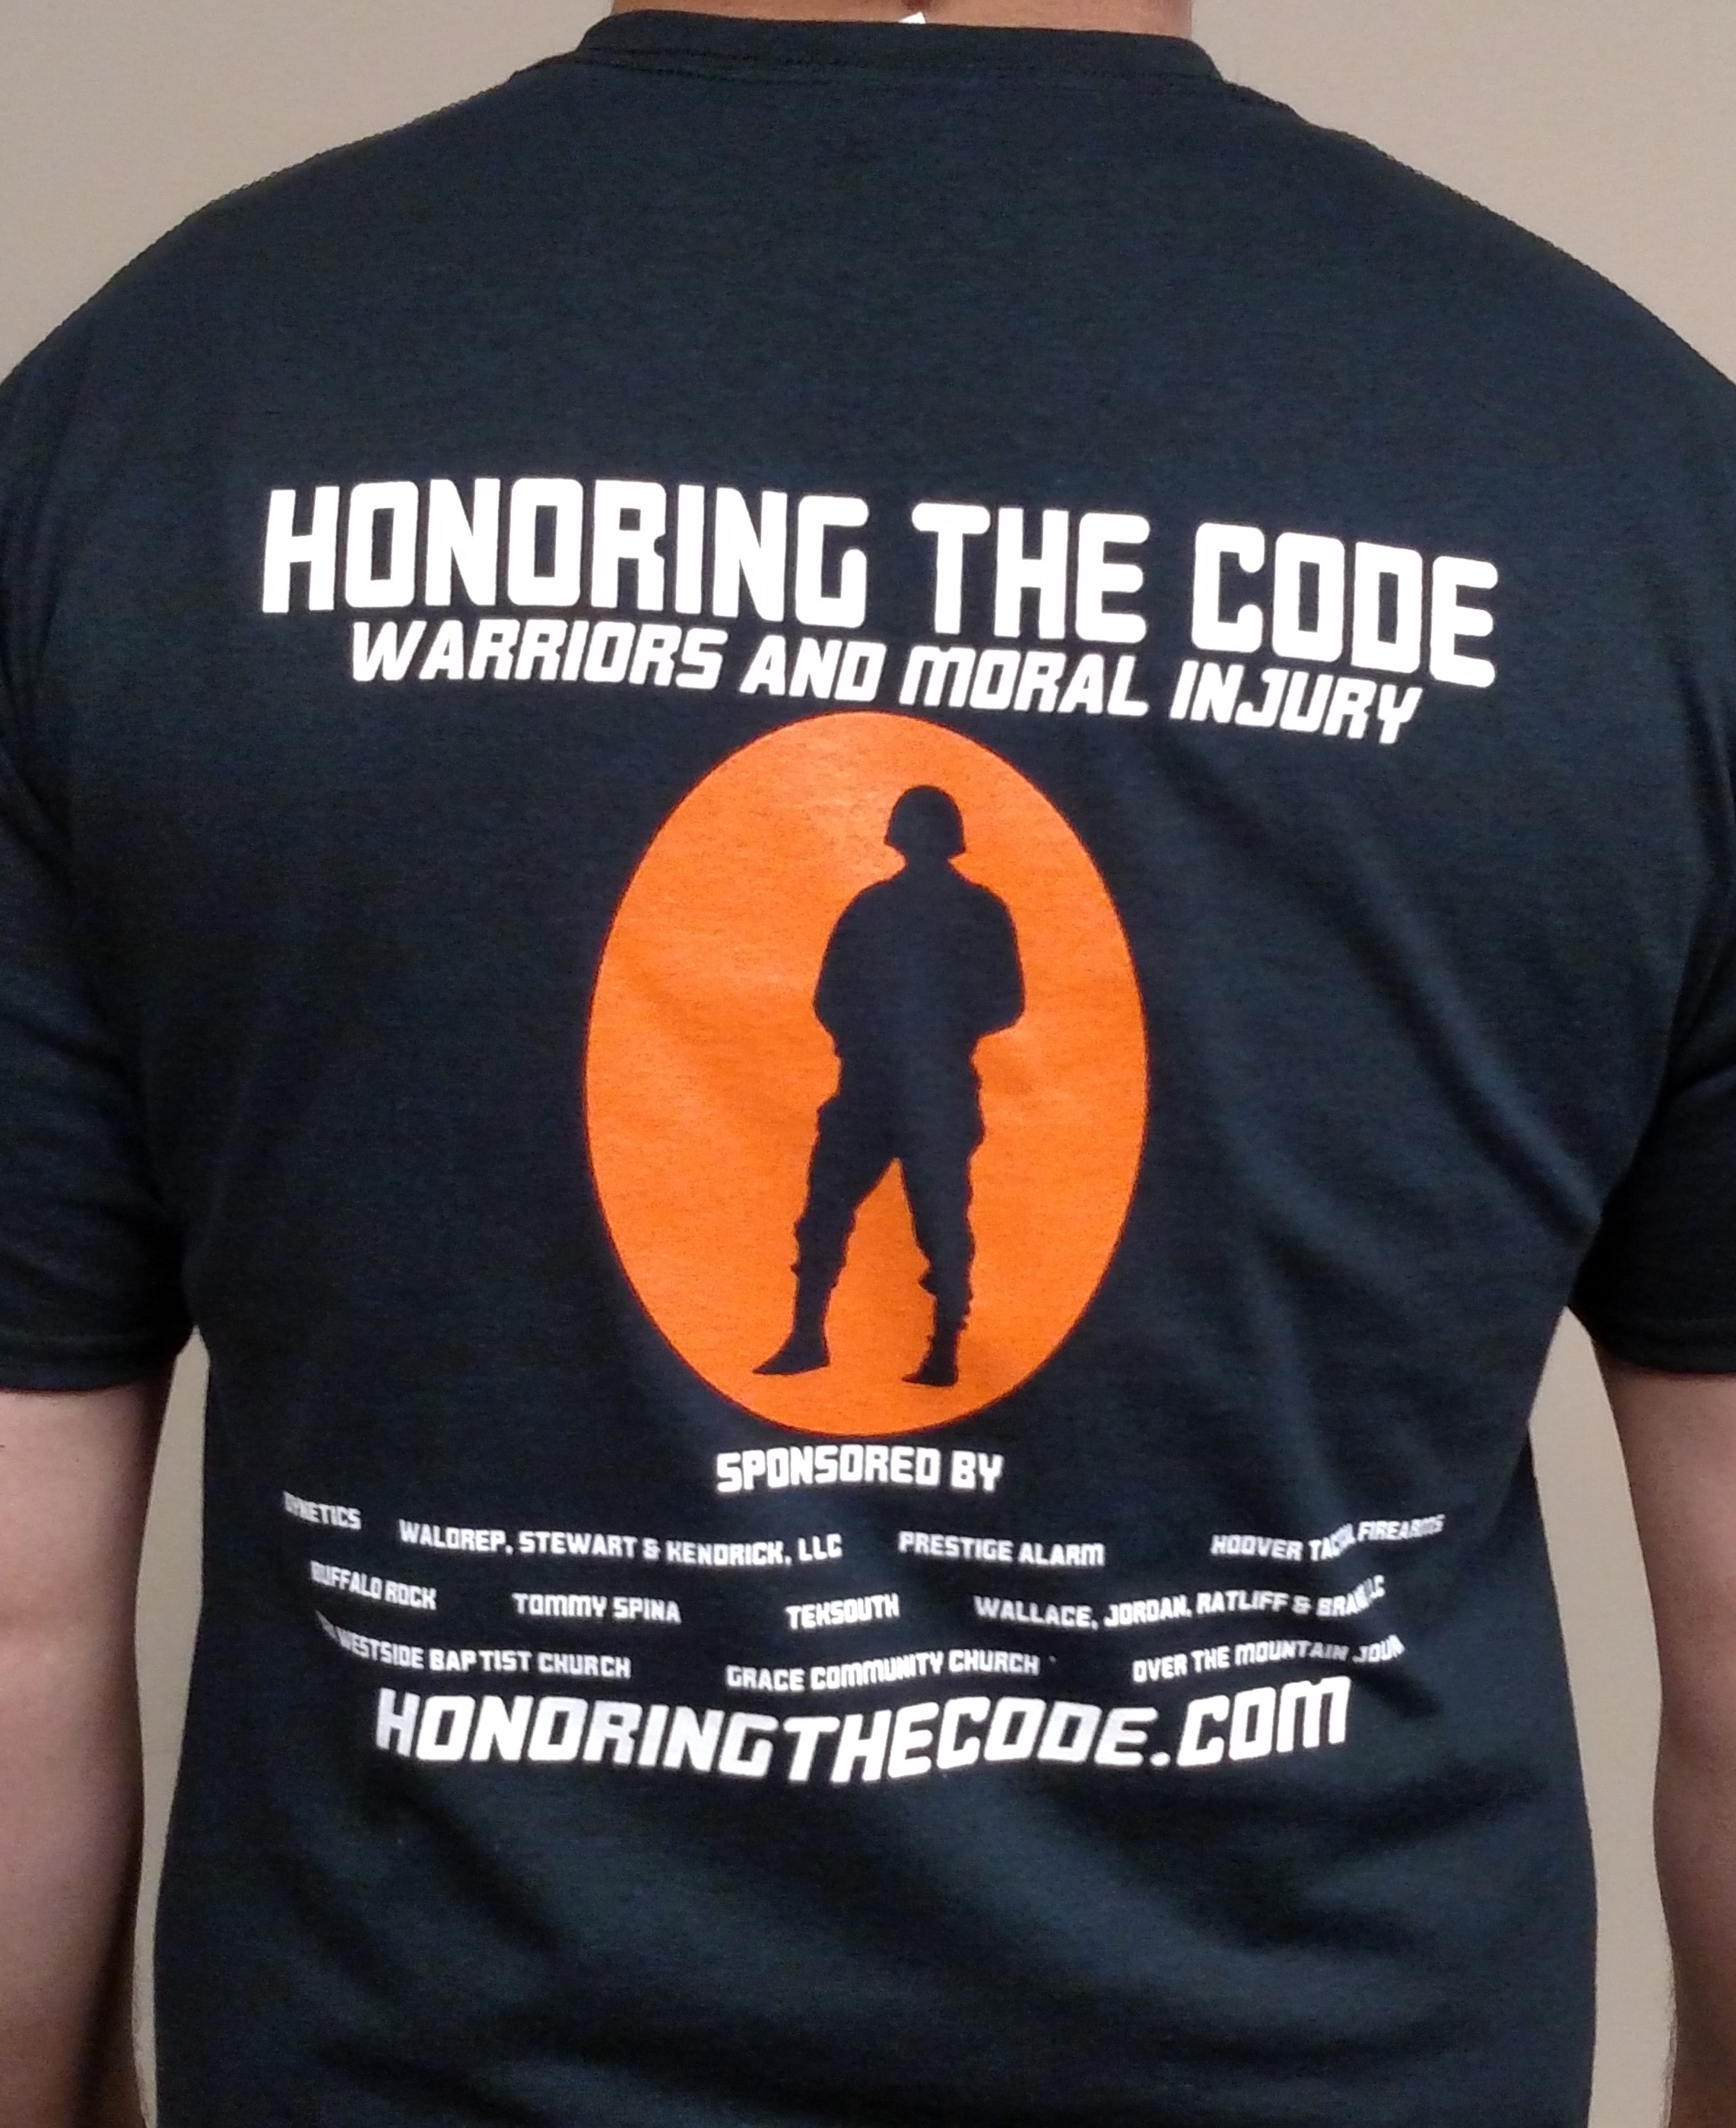 Honoring the Code T-Shirt Now just $12 USD! Includes S&H